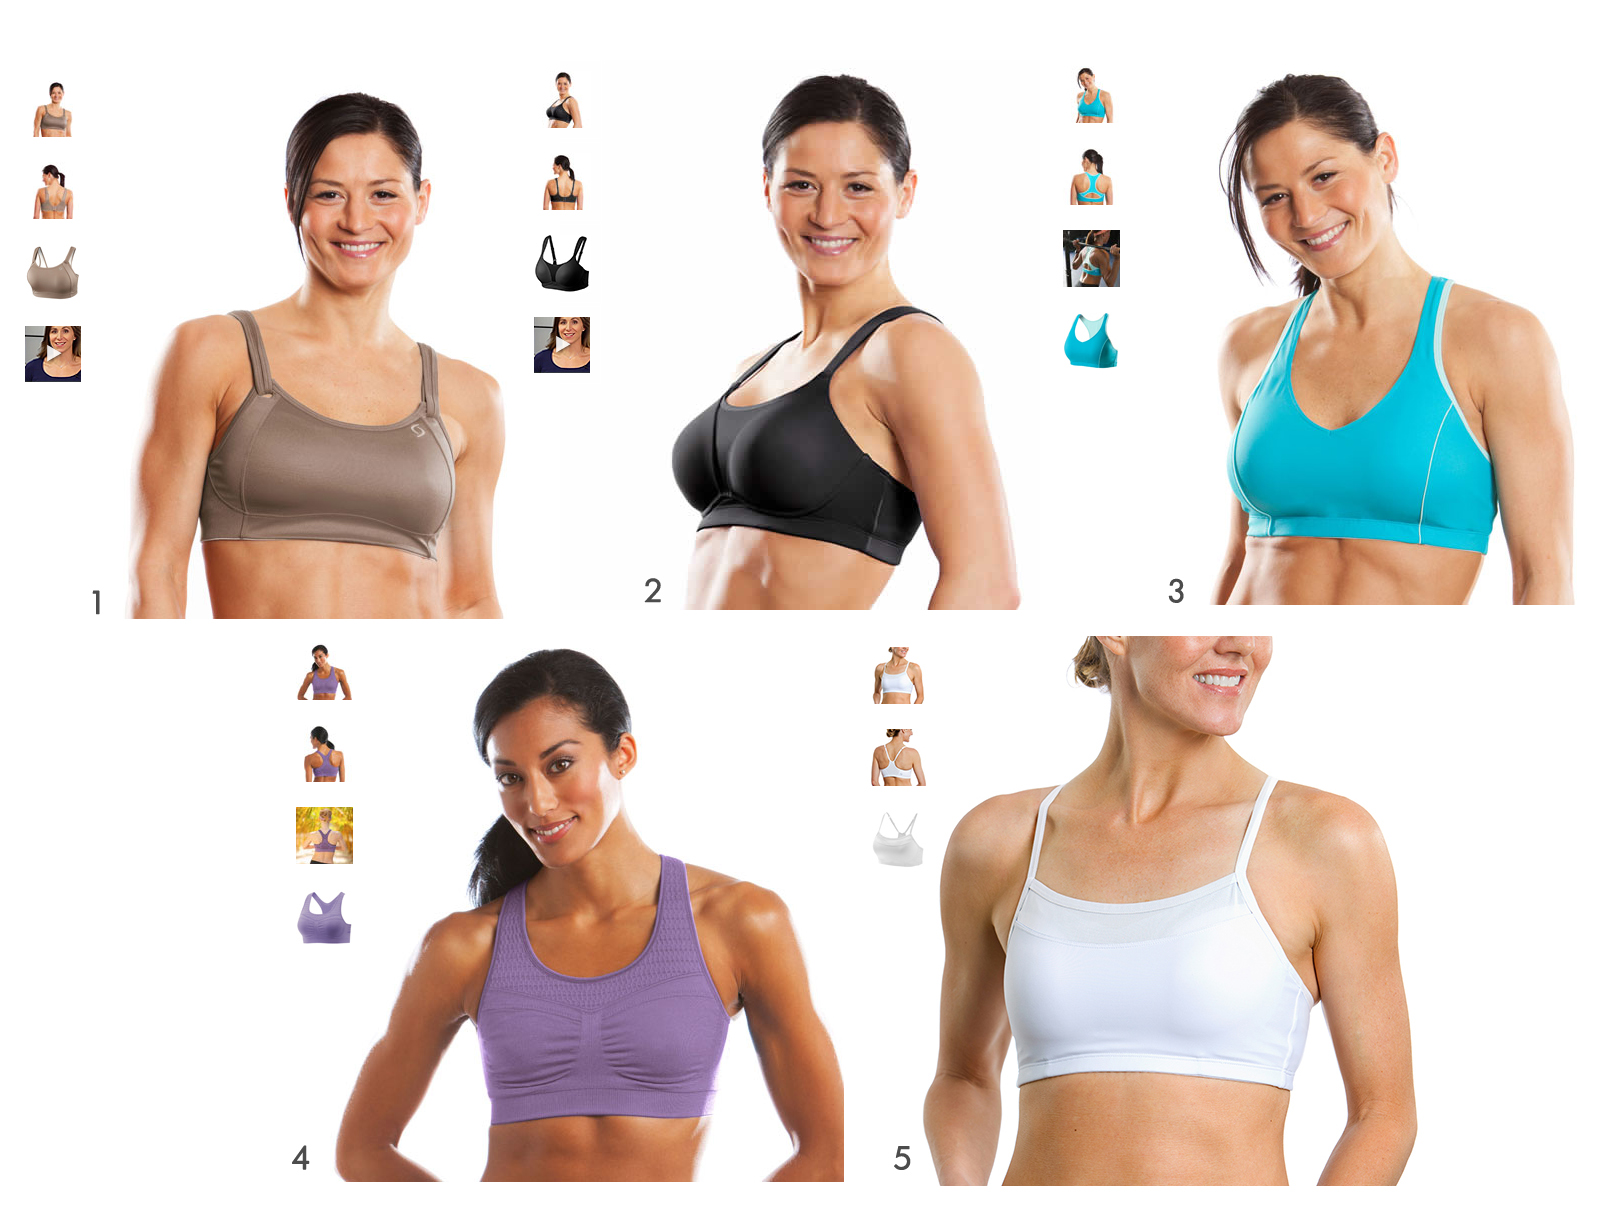 cf69cfd5247 Moving Comfort Sport Bras – Choosing the right bra for your shape